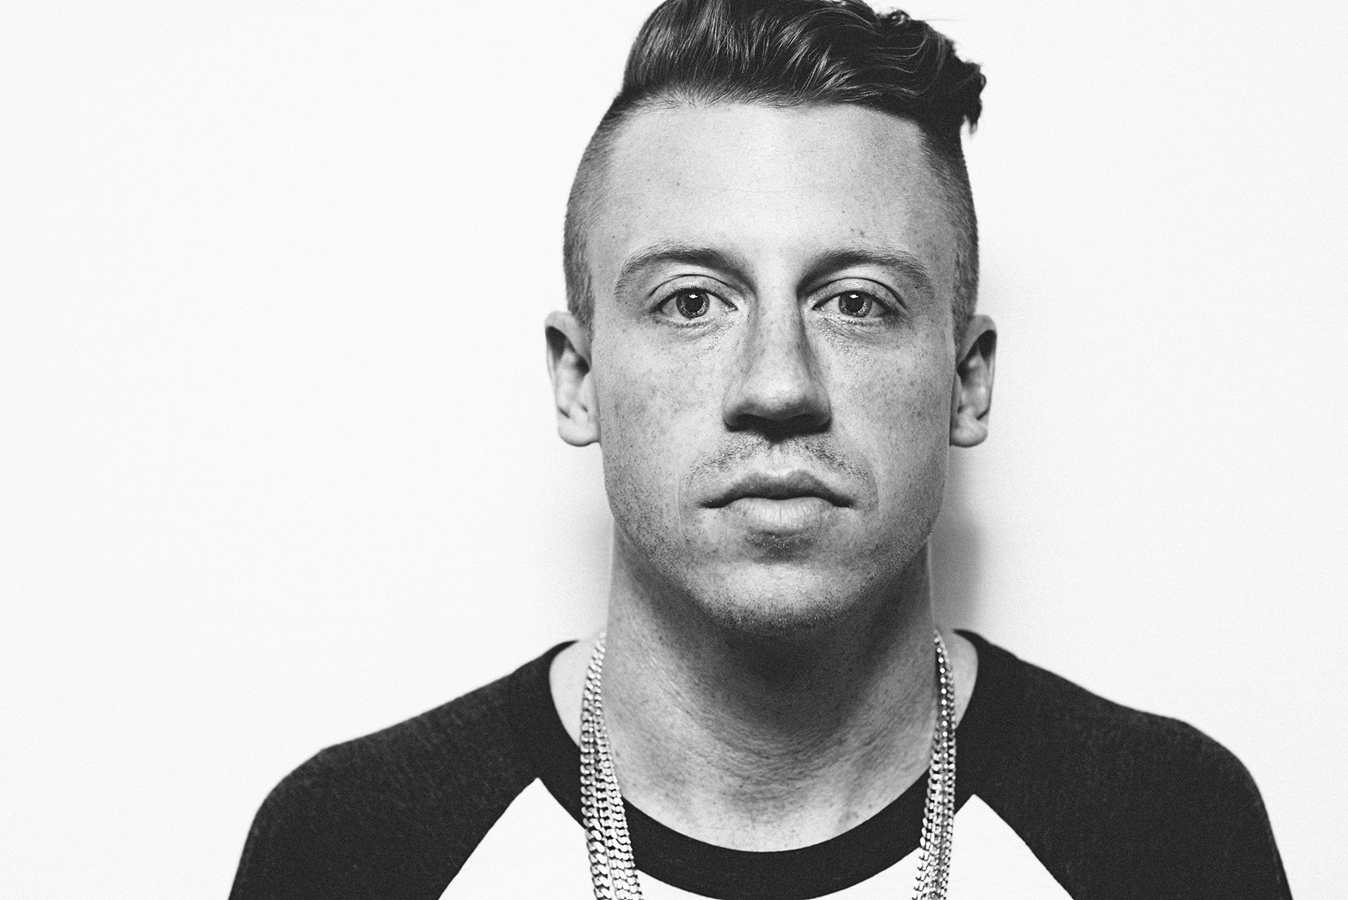 In foto, Macklemore